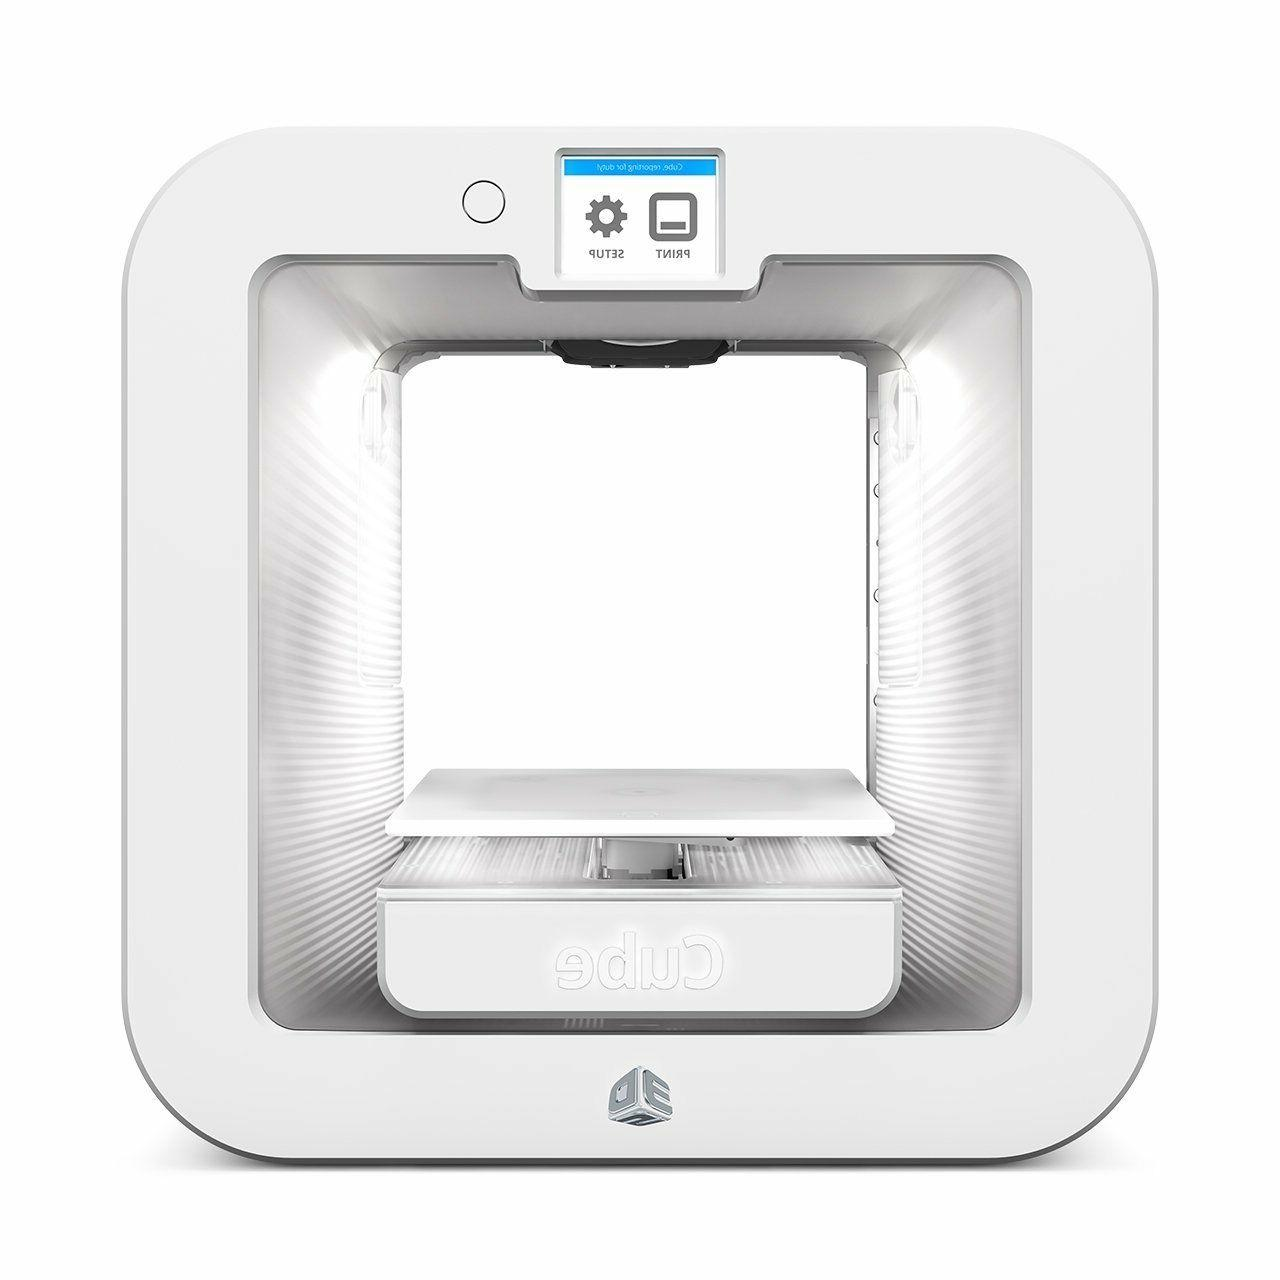 cube wireless printer 3rd generation 391100 white